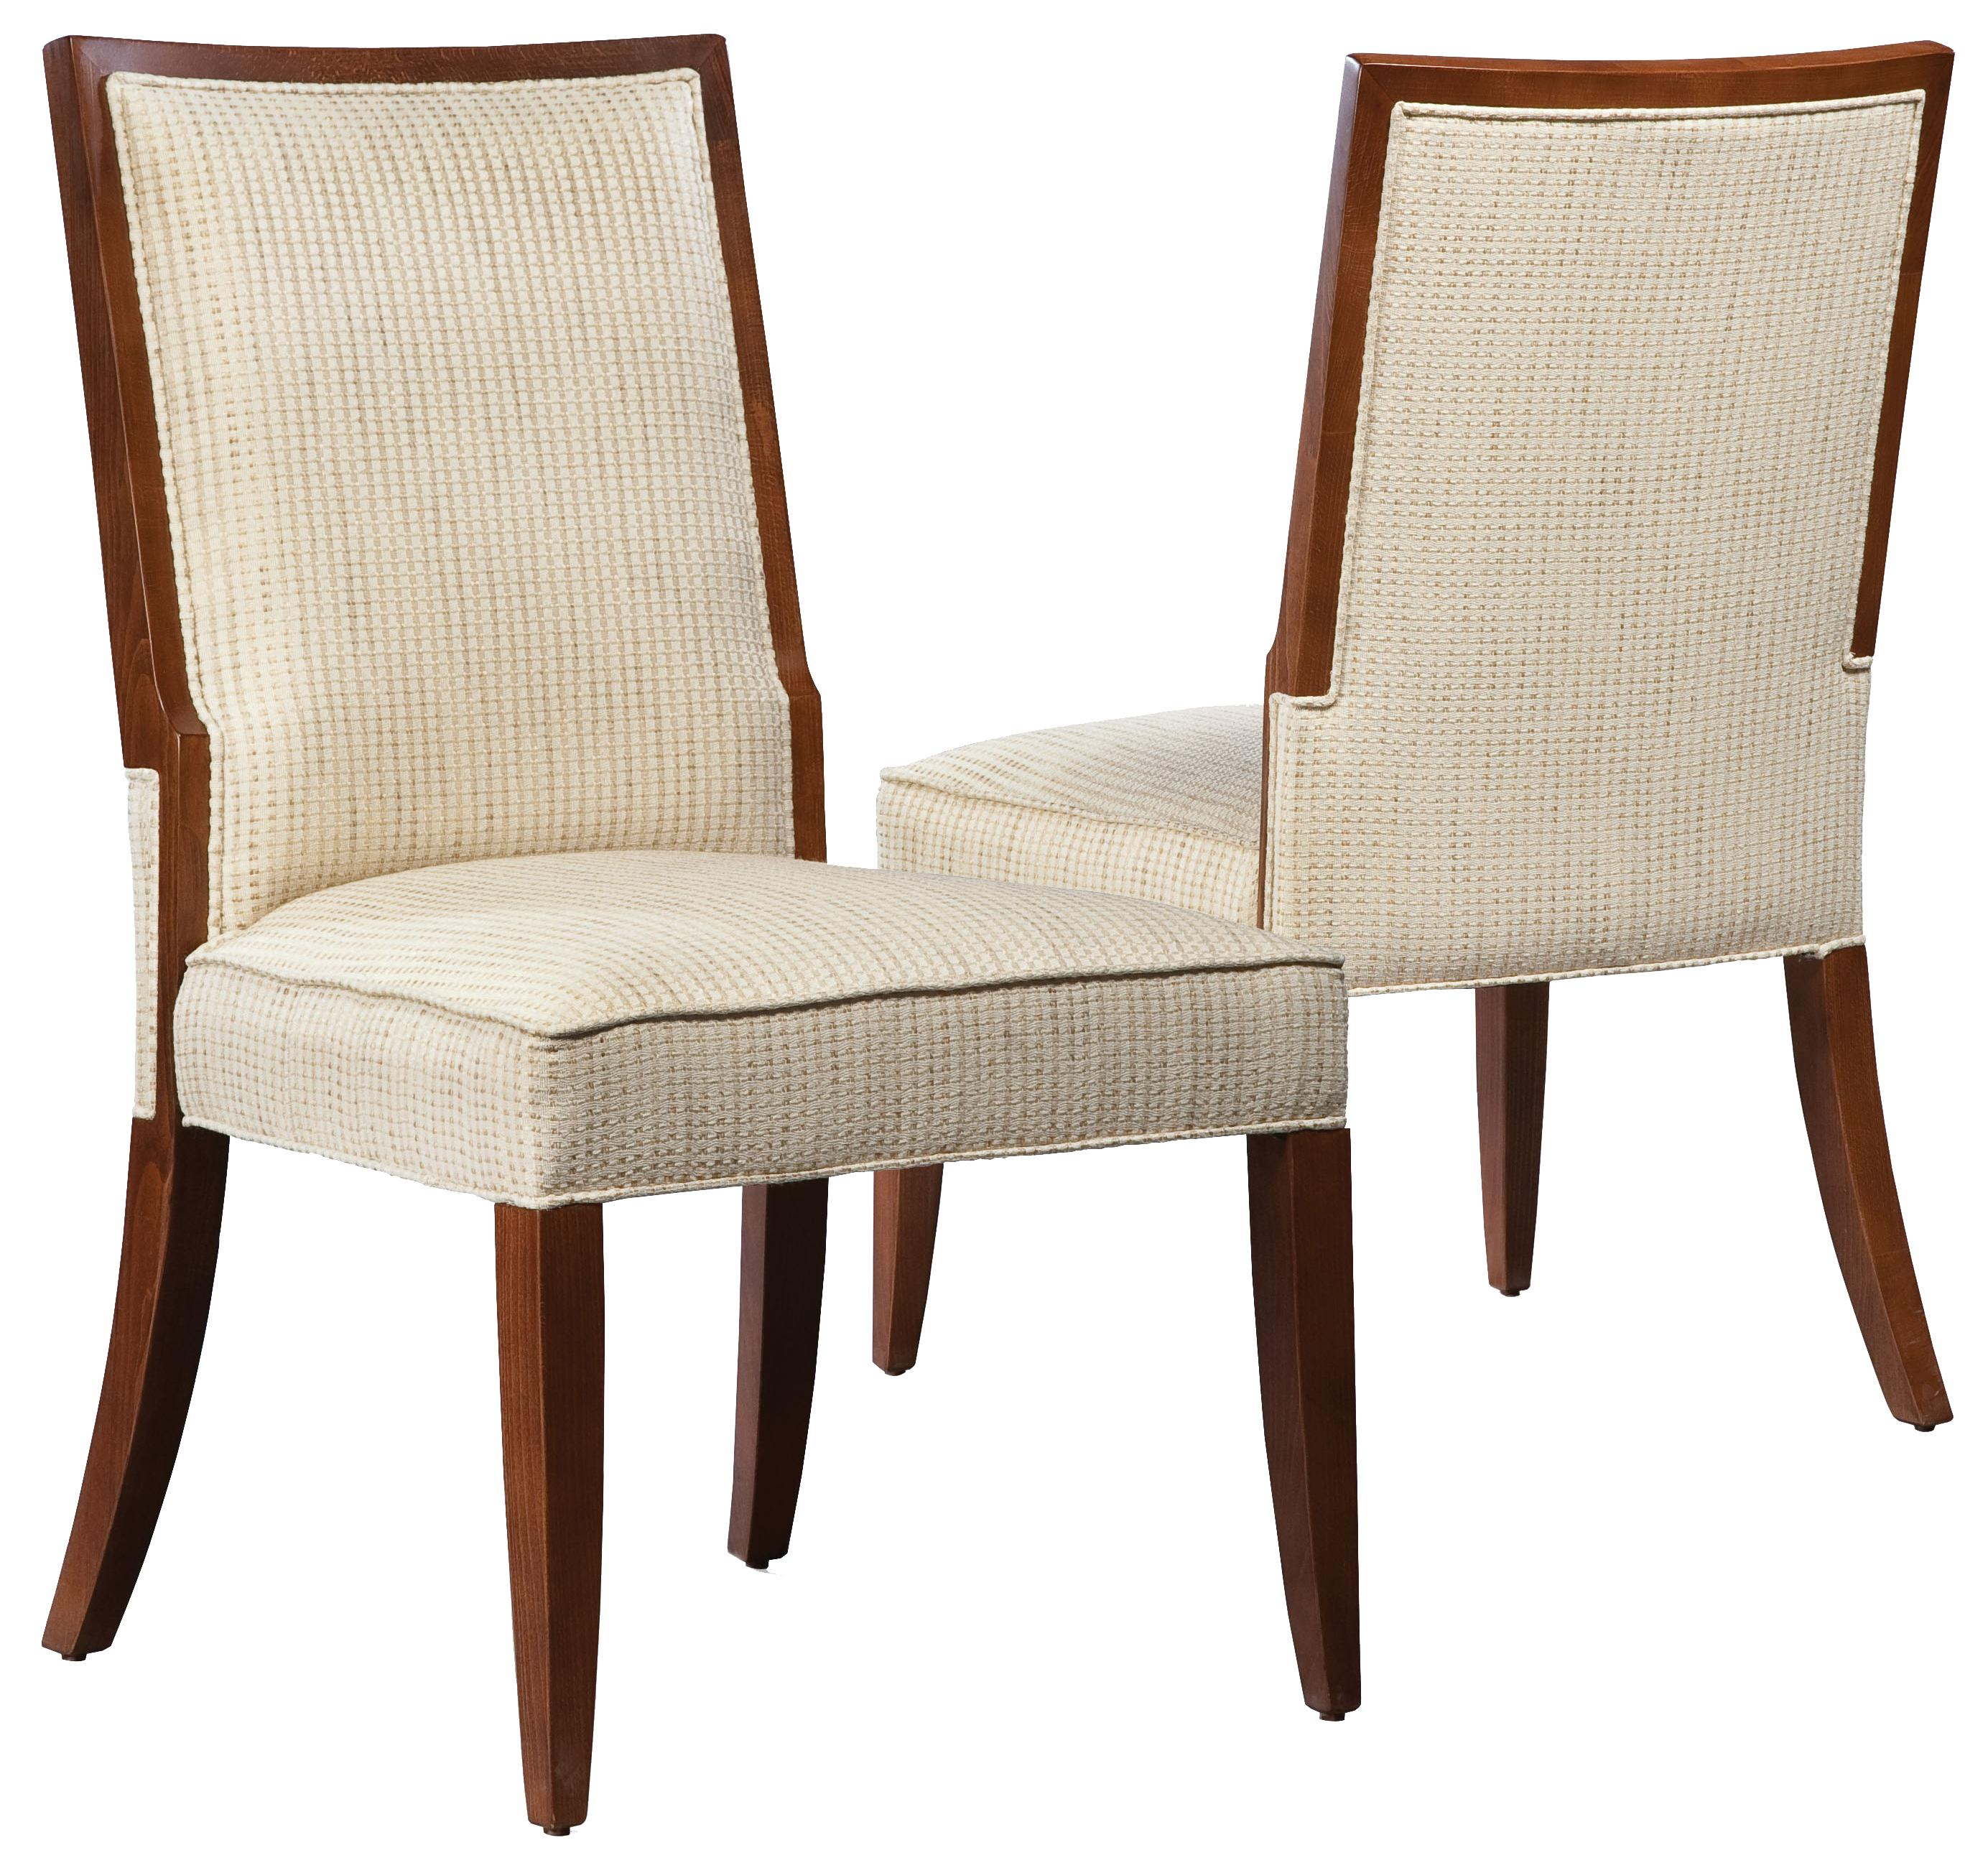 Fairfield Chairs Fairfield Fairfield Dining Chairs Contemporary Dining Room